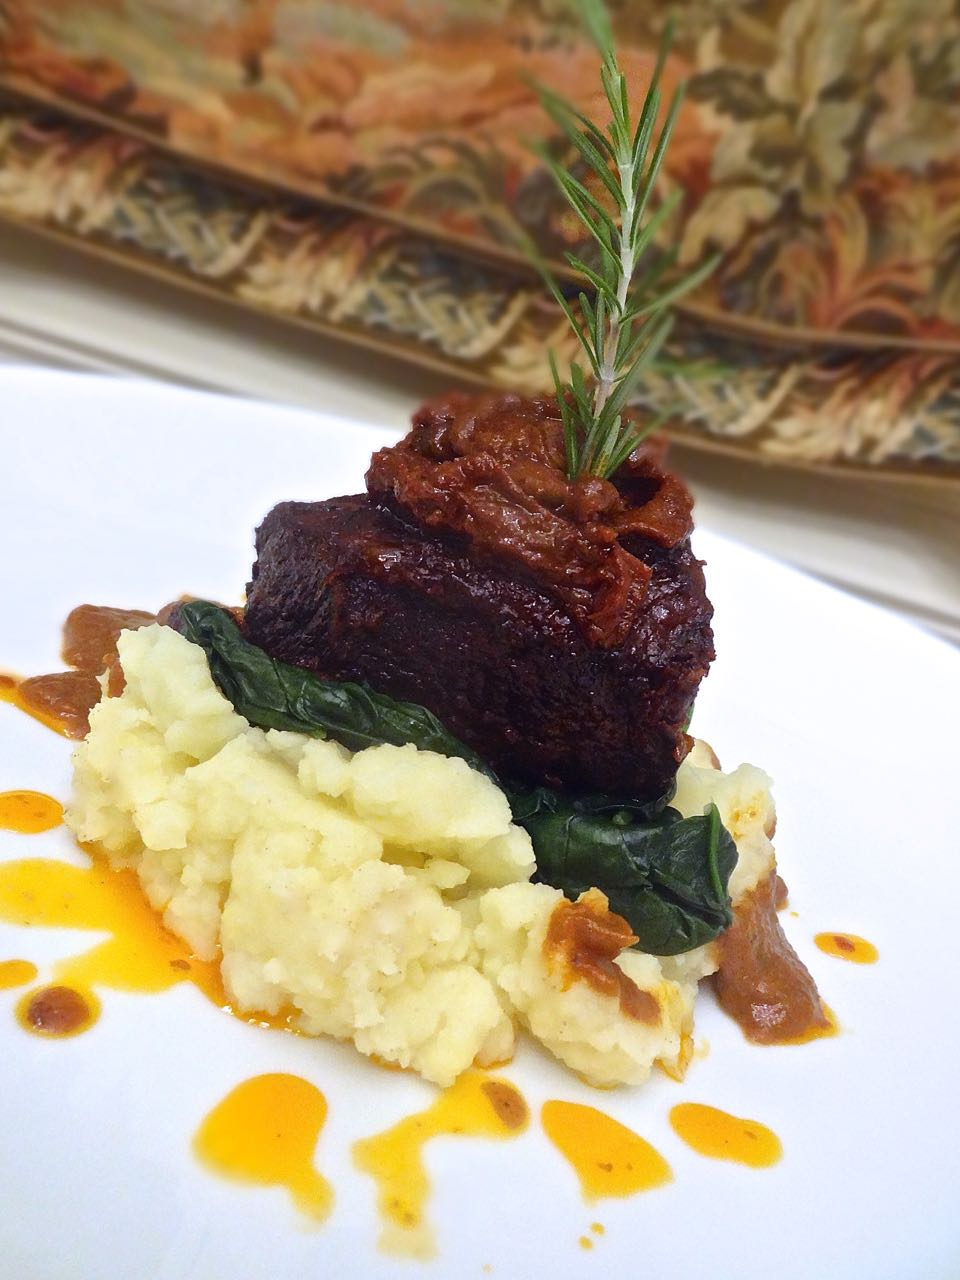 Scrumpdillyicious: Braised Short Ribs With Porcini-Port Wine Sauce